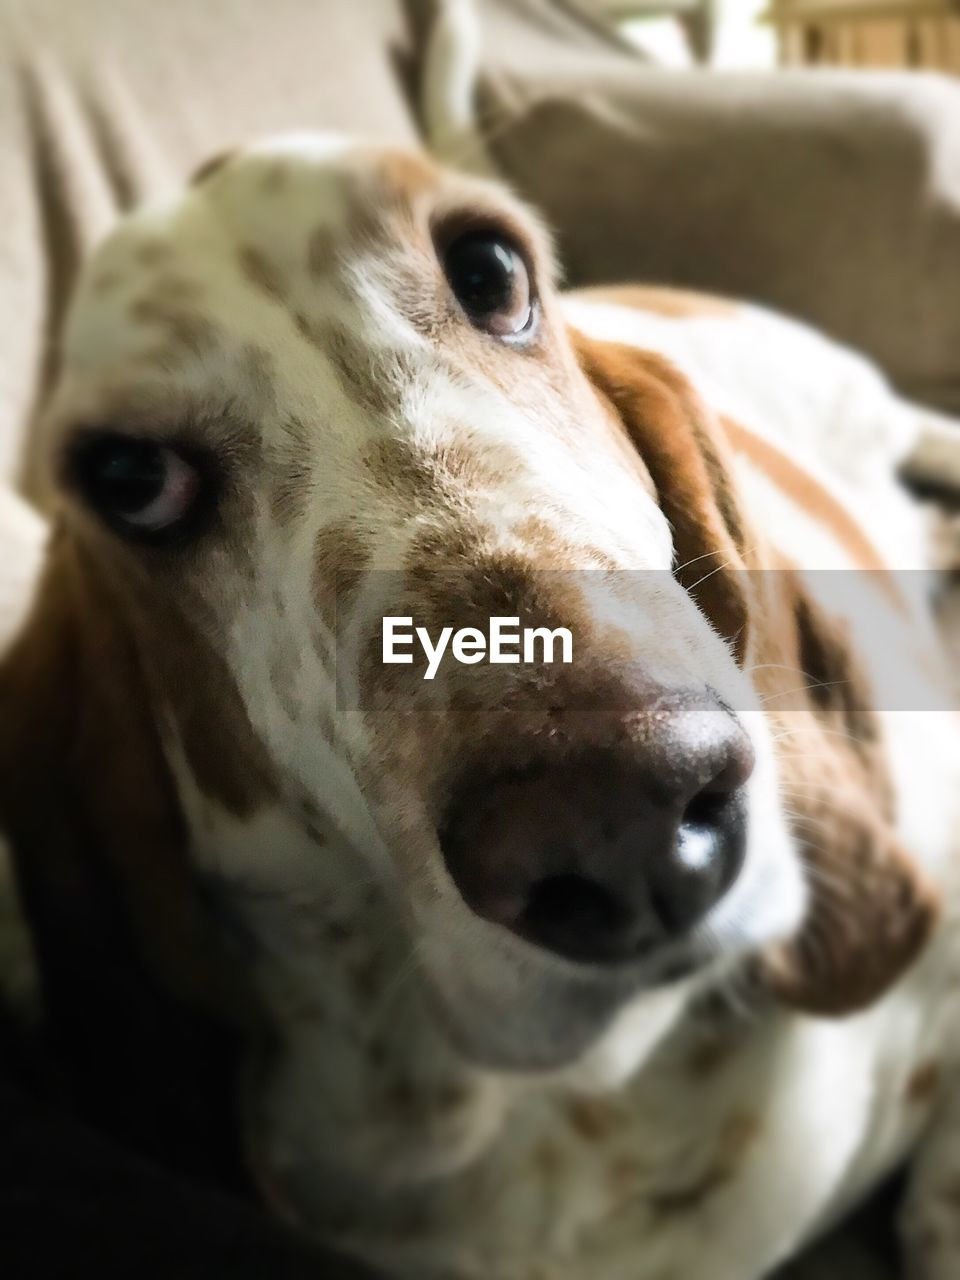 dog, one animal, domestic animals, animal themes, pets, animal head, mammal, close-up, no people, portrait, looking at camera, indoors, day